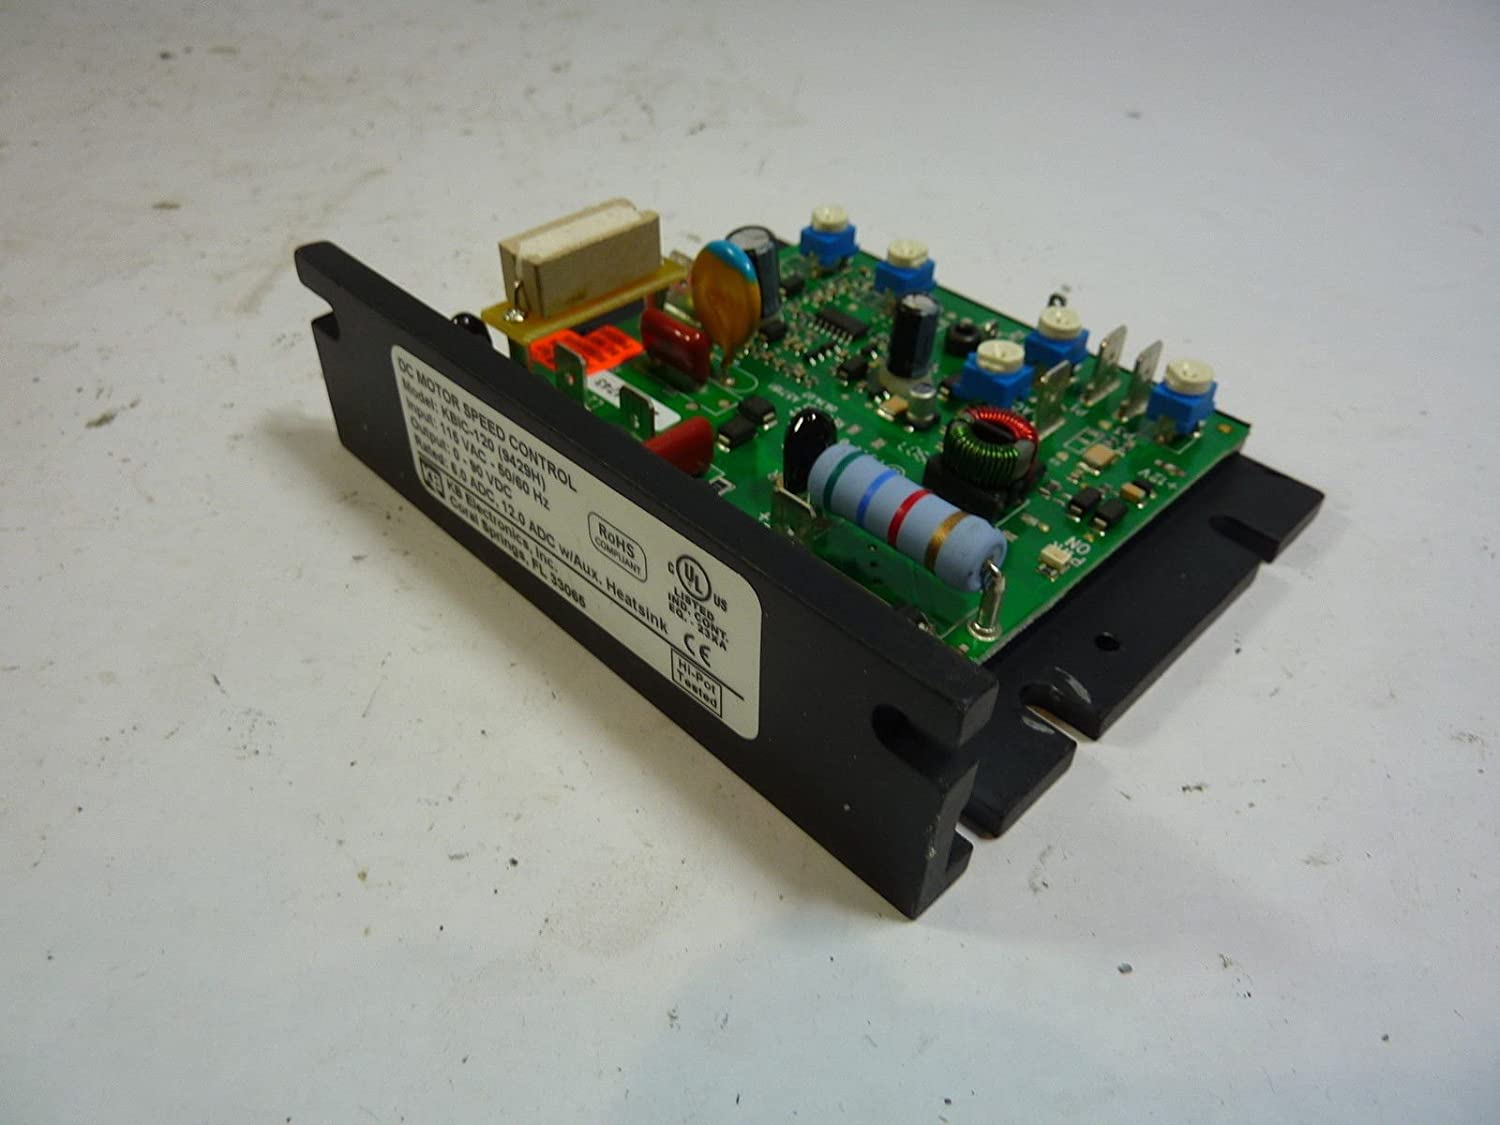 KBIC-120 (9429) DC Drives Chis on